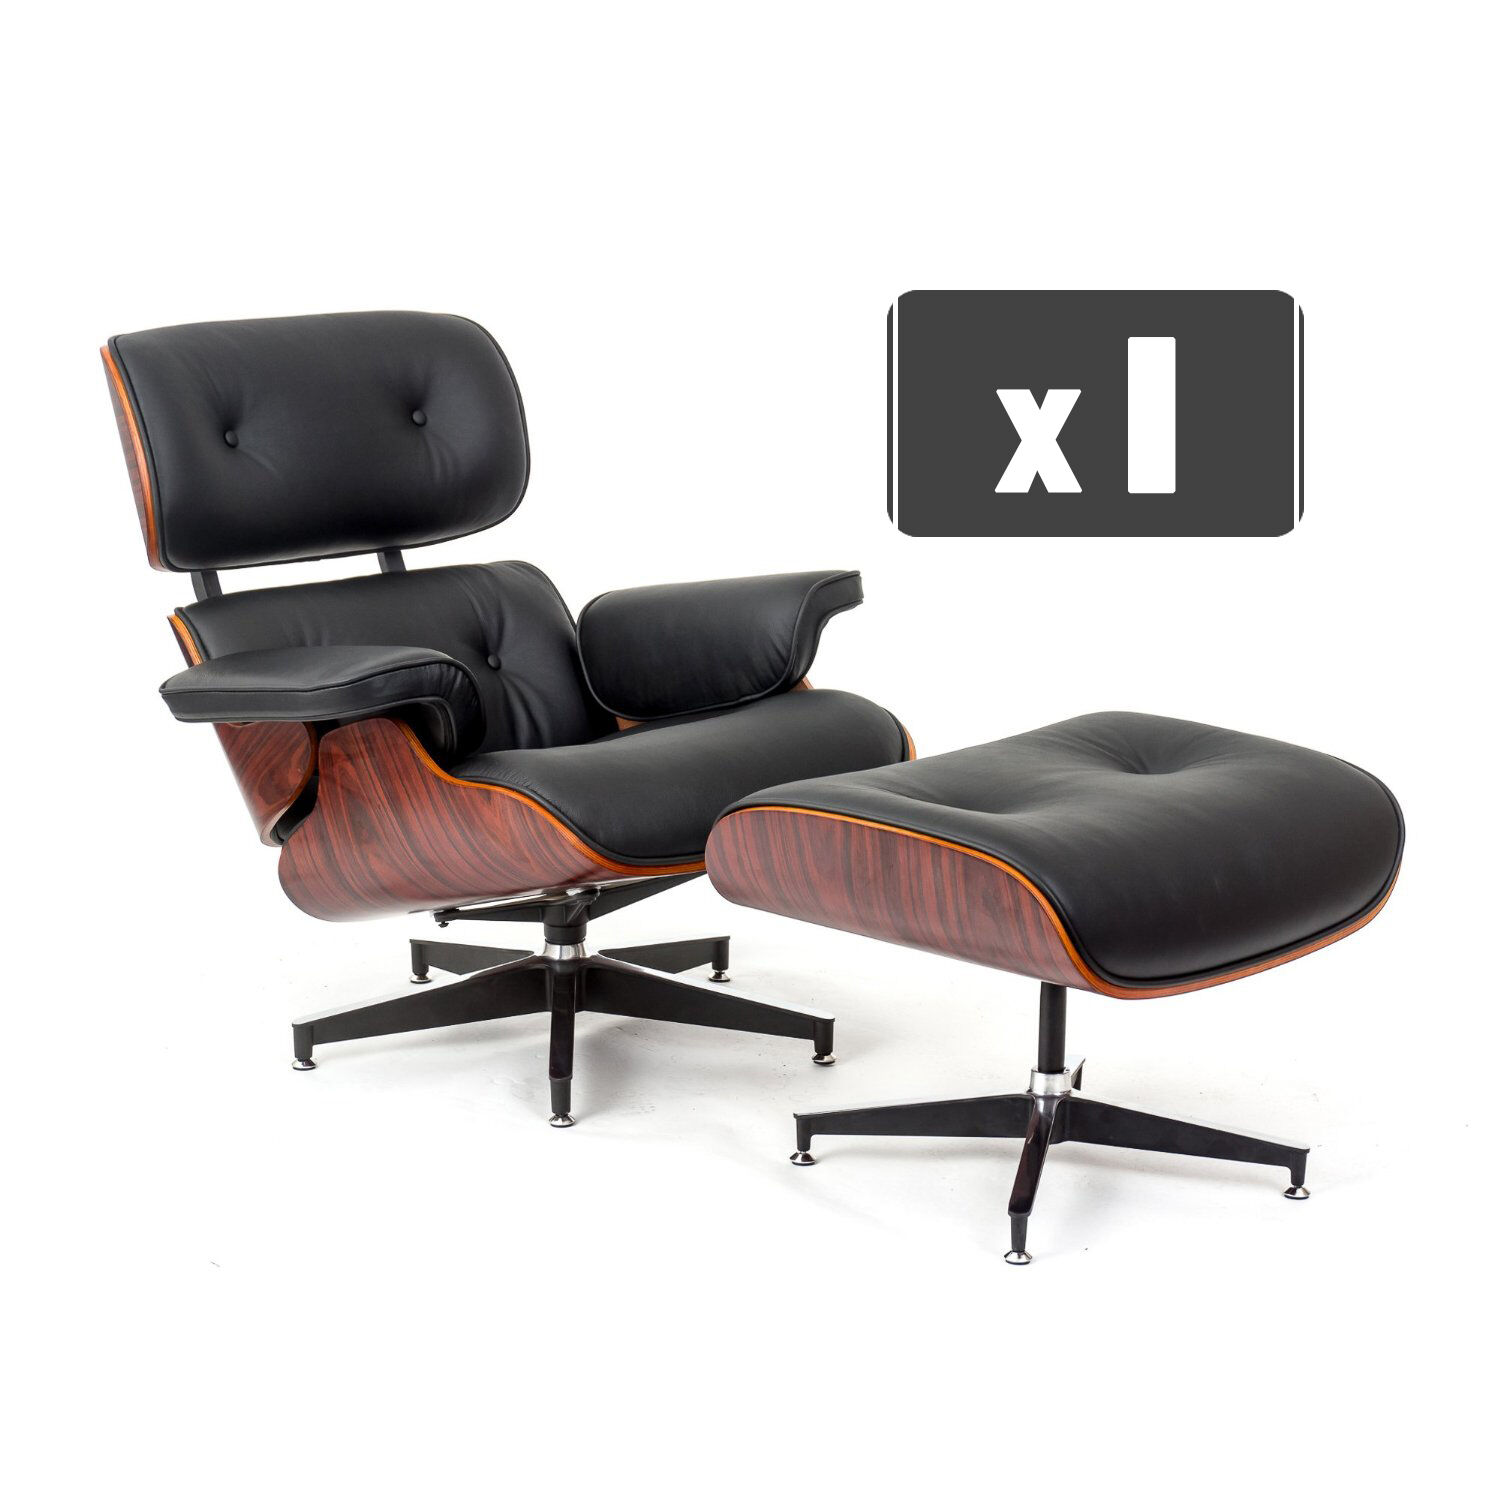 Replica charles eames lounge chair ottoman in black for Reproduction chaise eames